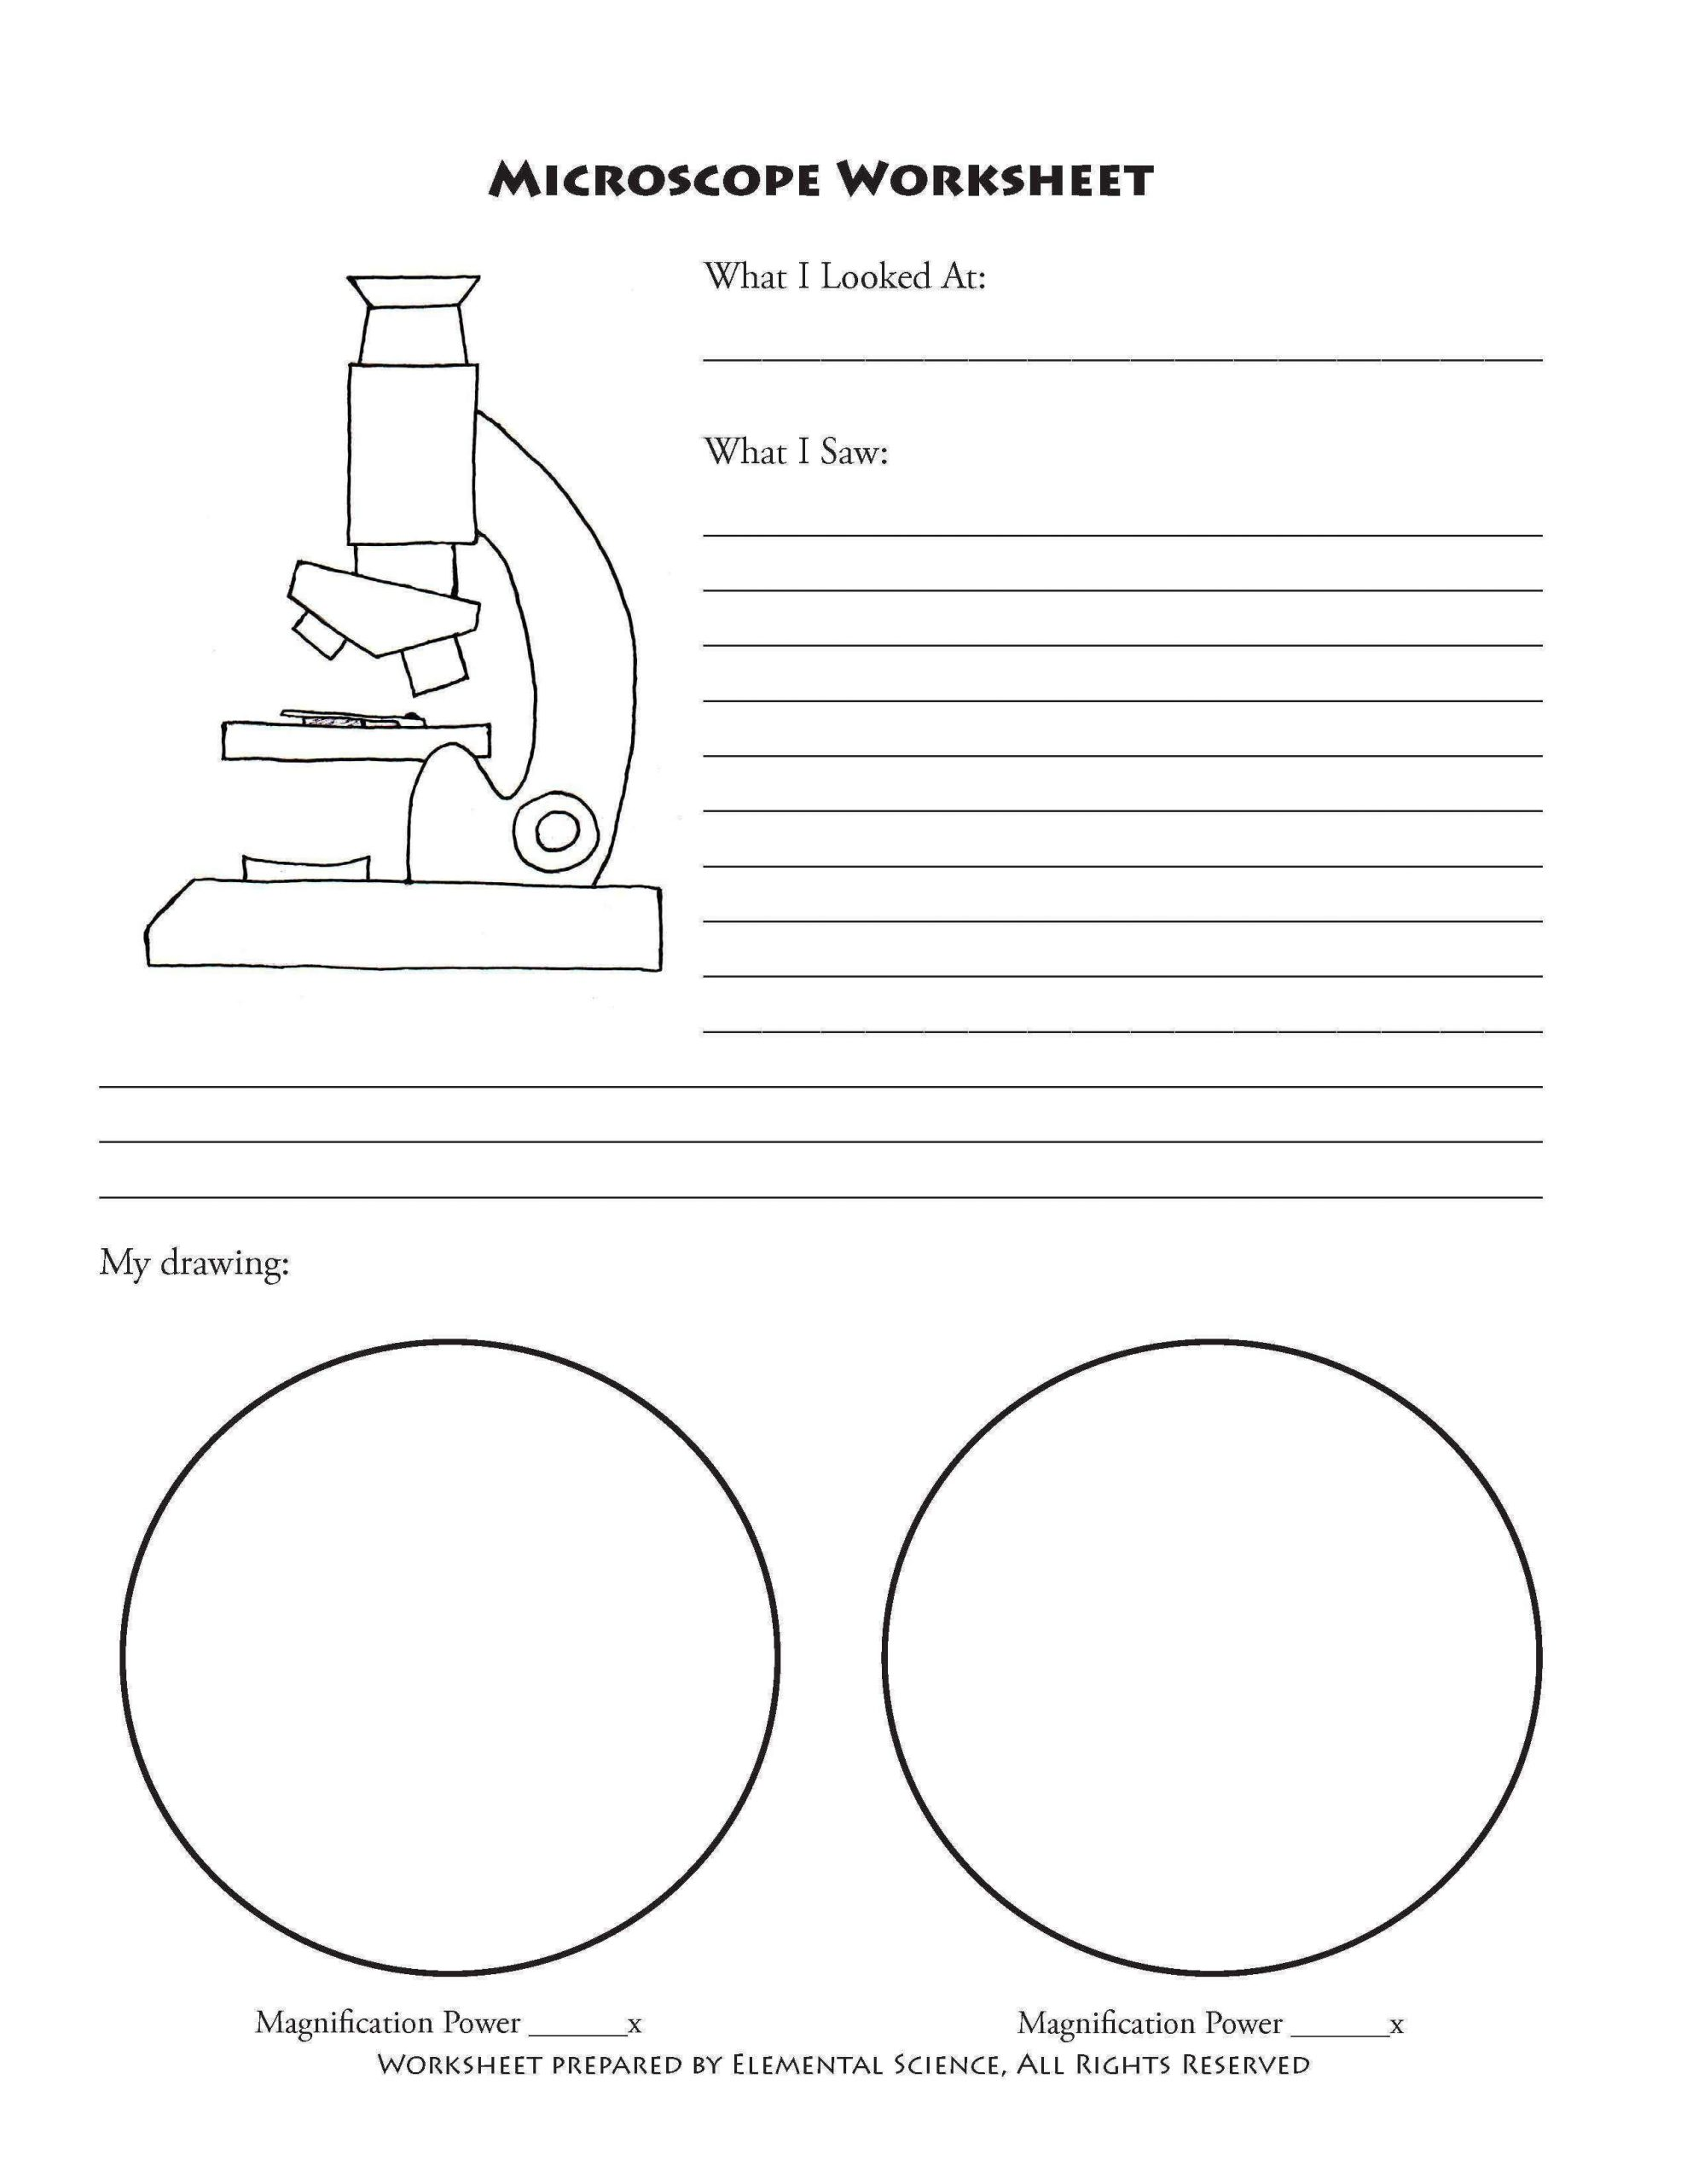 Zoology Worksheets High School Free Microscope Notebooking Printables From Elemental